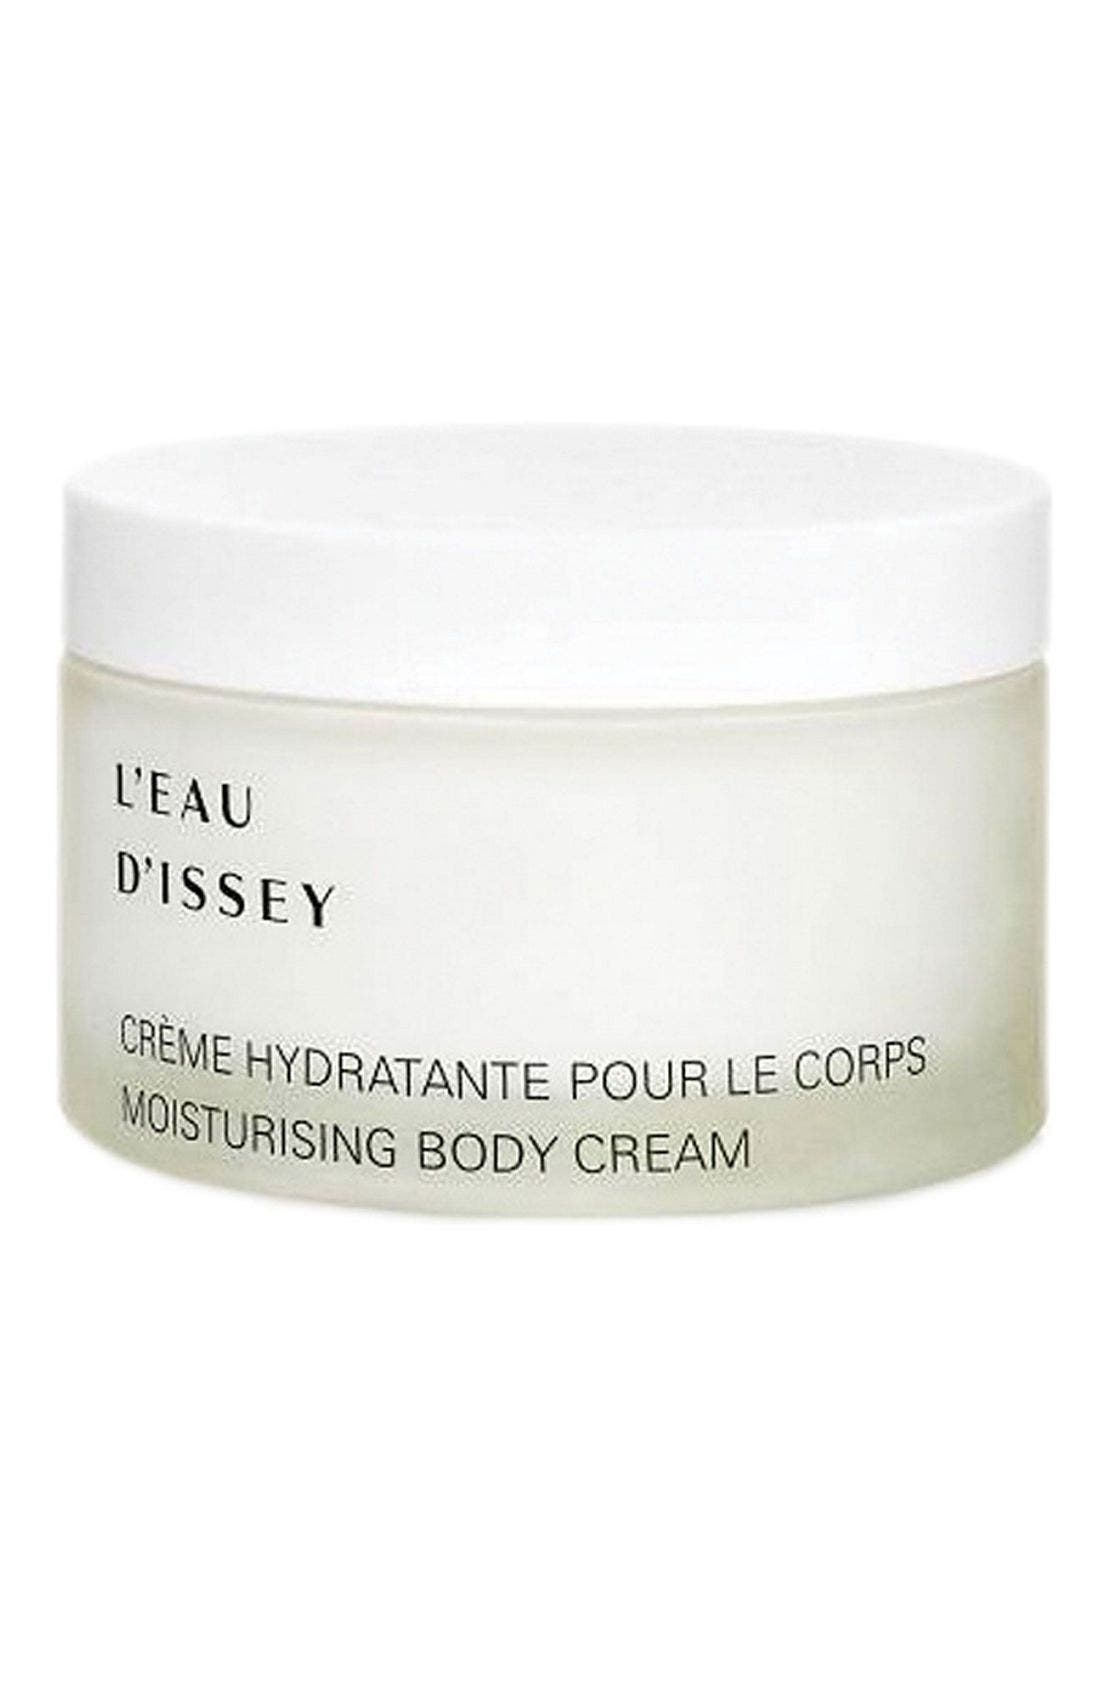 'L'Eau d'Issey' Moisturizing Body Cream,                         Main,                         color, NO COLOR